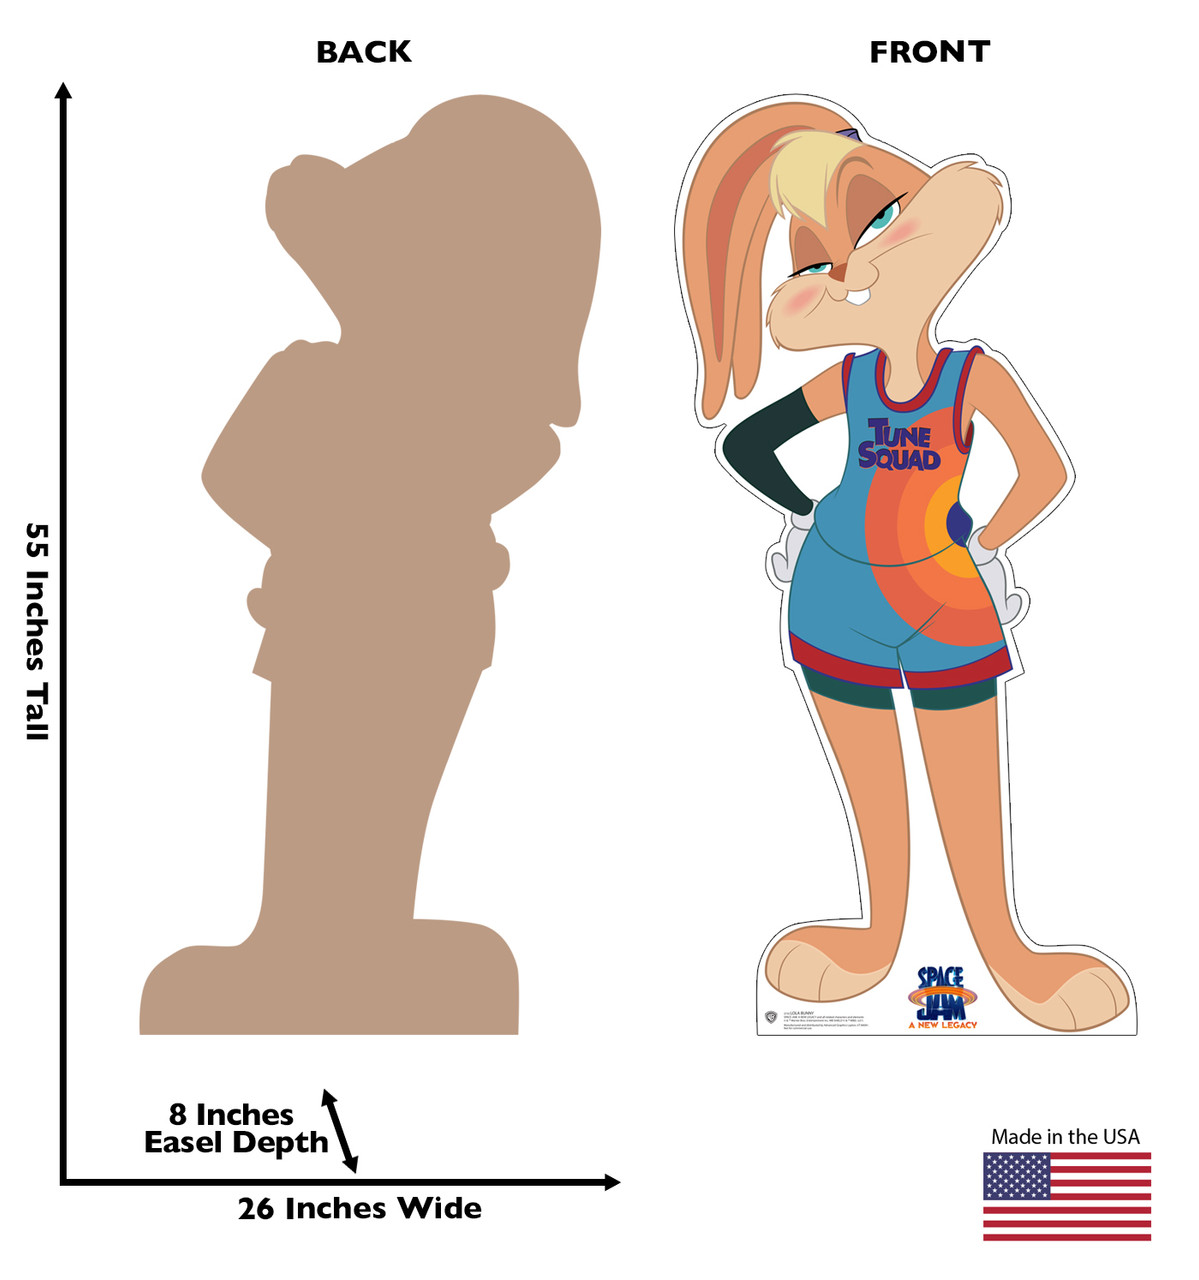 Life-size cardboard standee of Lola Bunny from Space Jam A New Legacy with front and back dimensions.